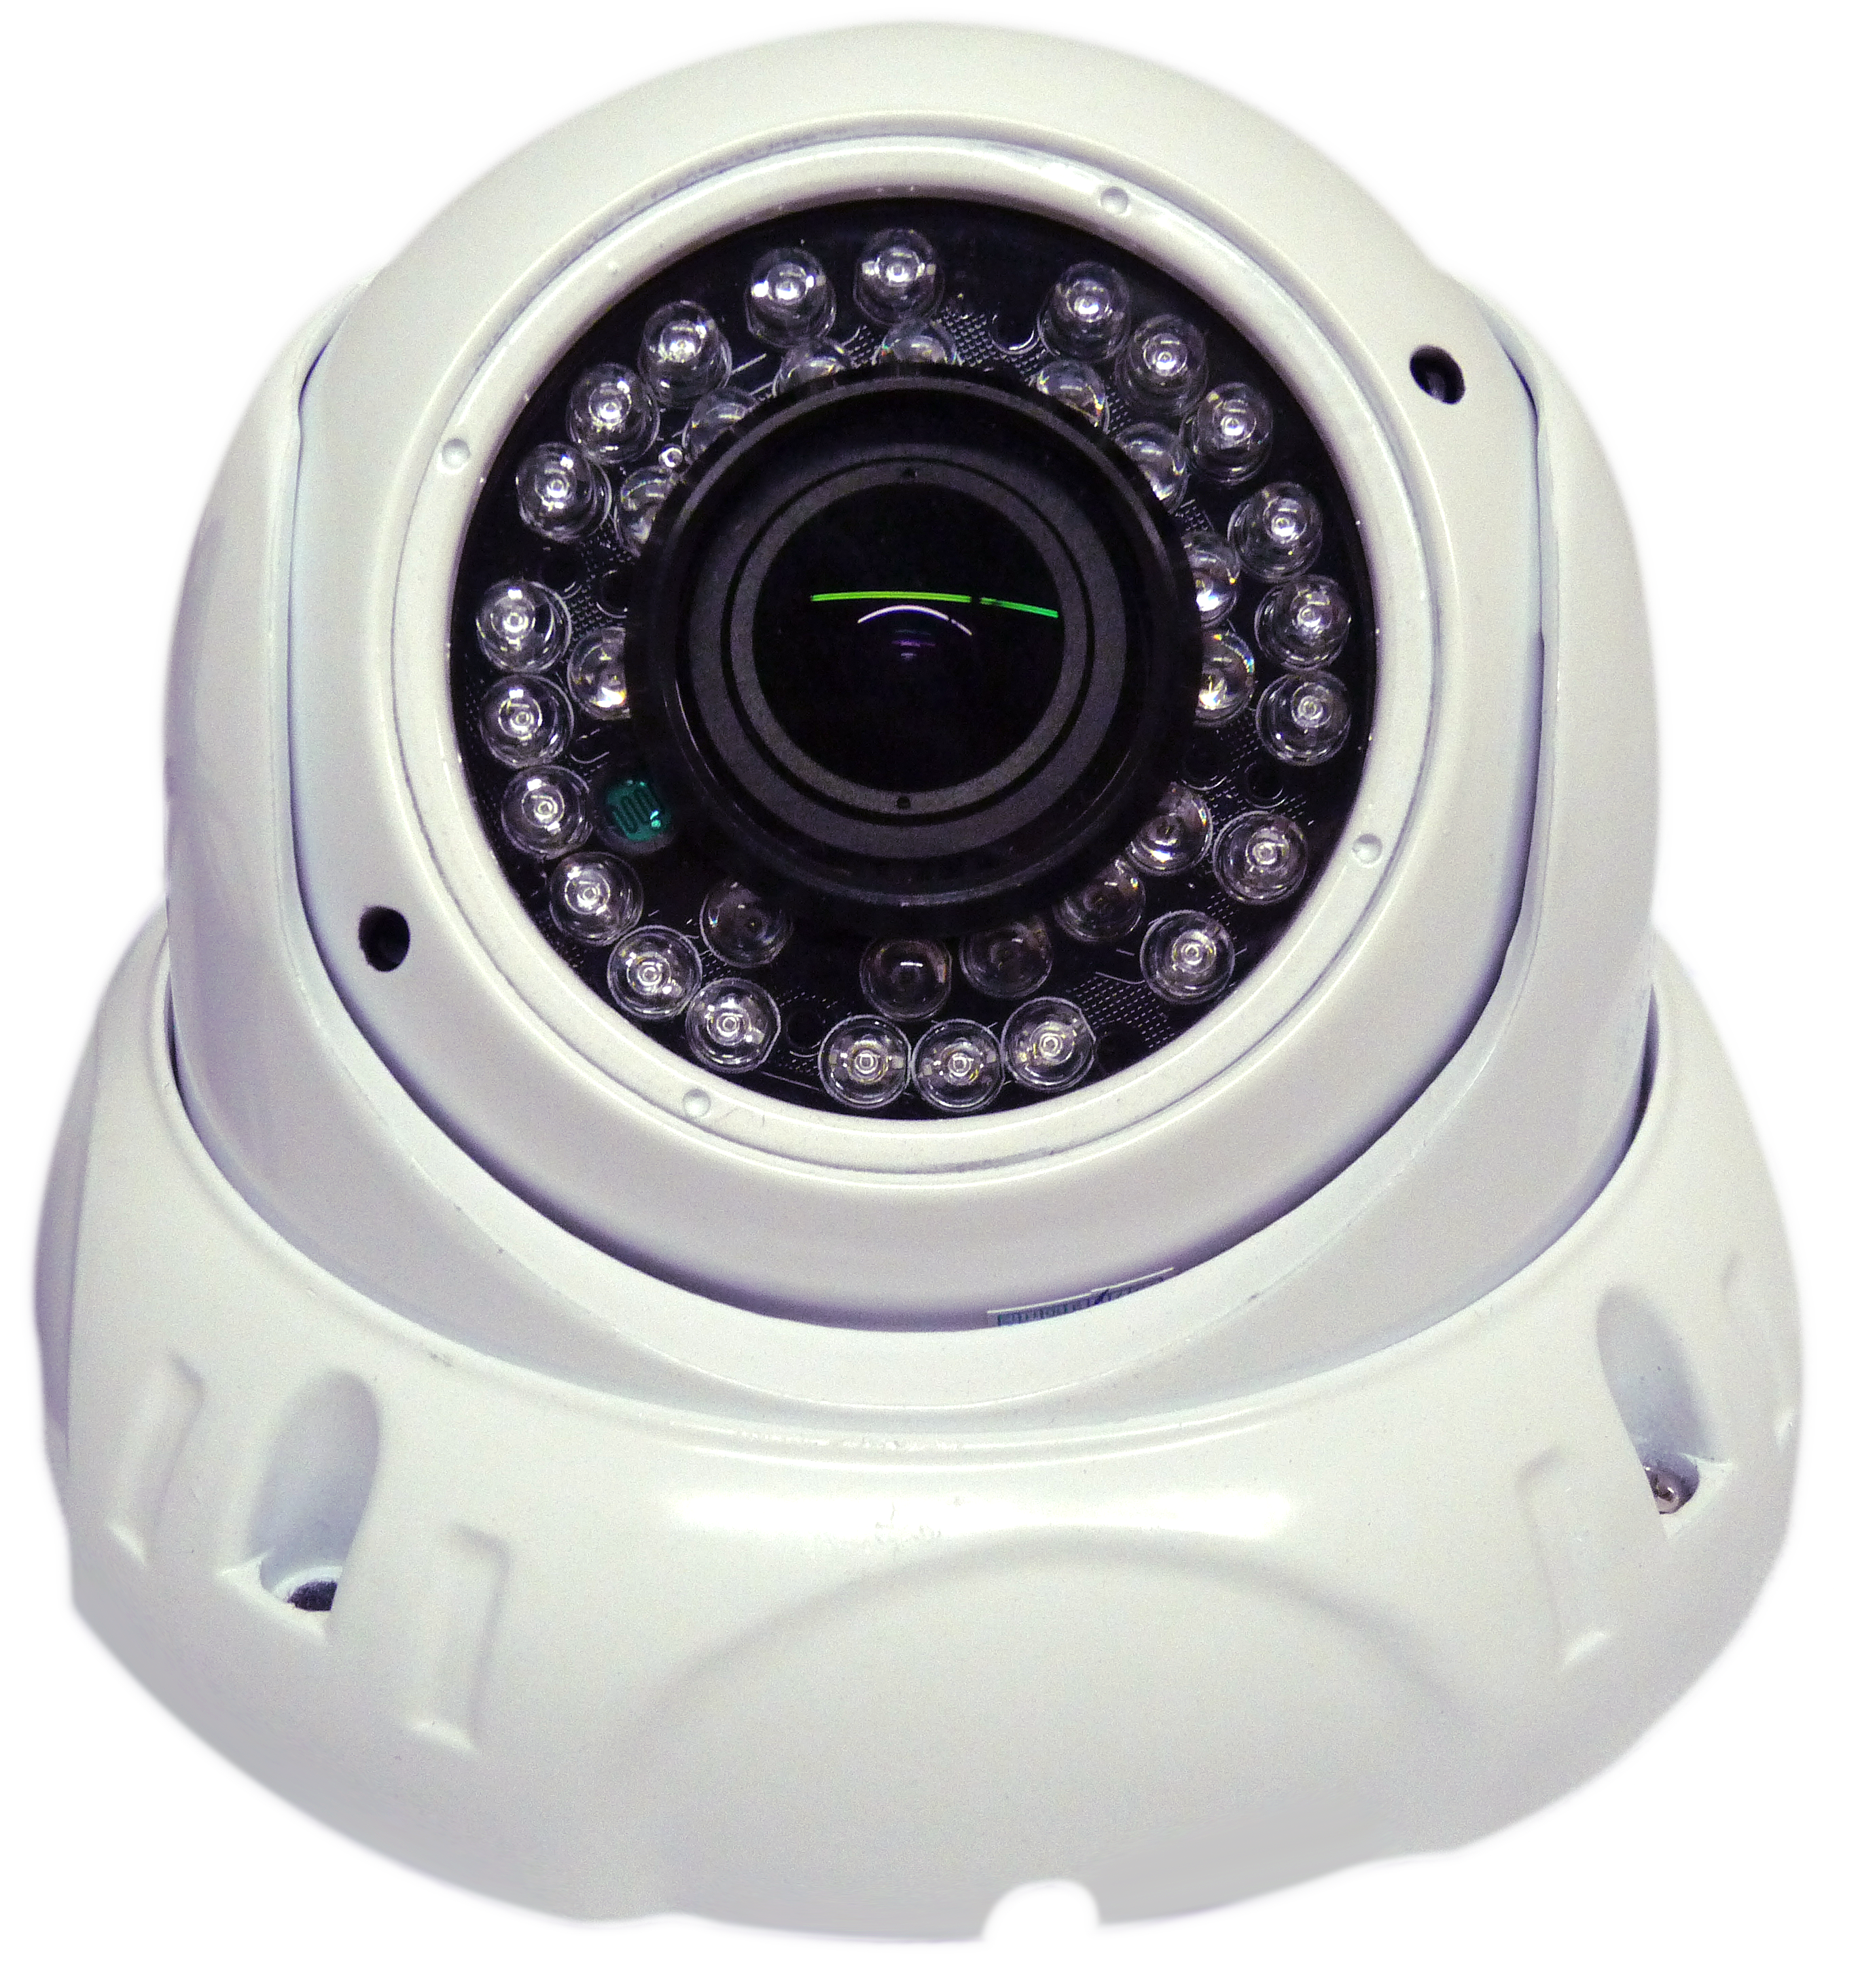 DBS R610W - 700TVL CCTV Dome Security Camera - 1/3'' Sony Super HAD CCD II